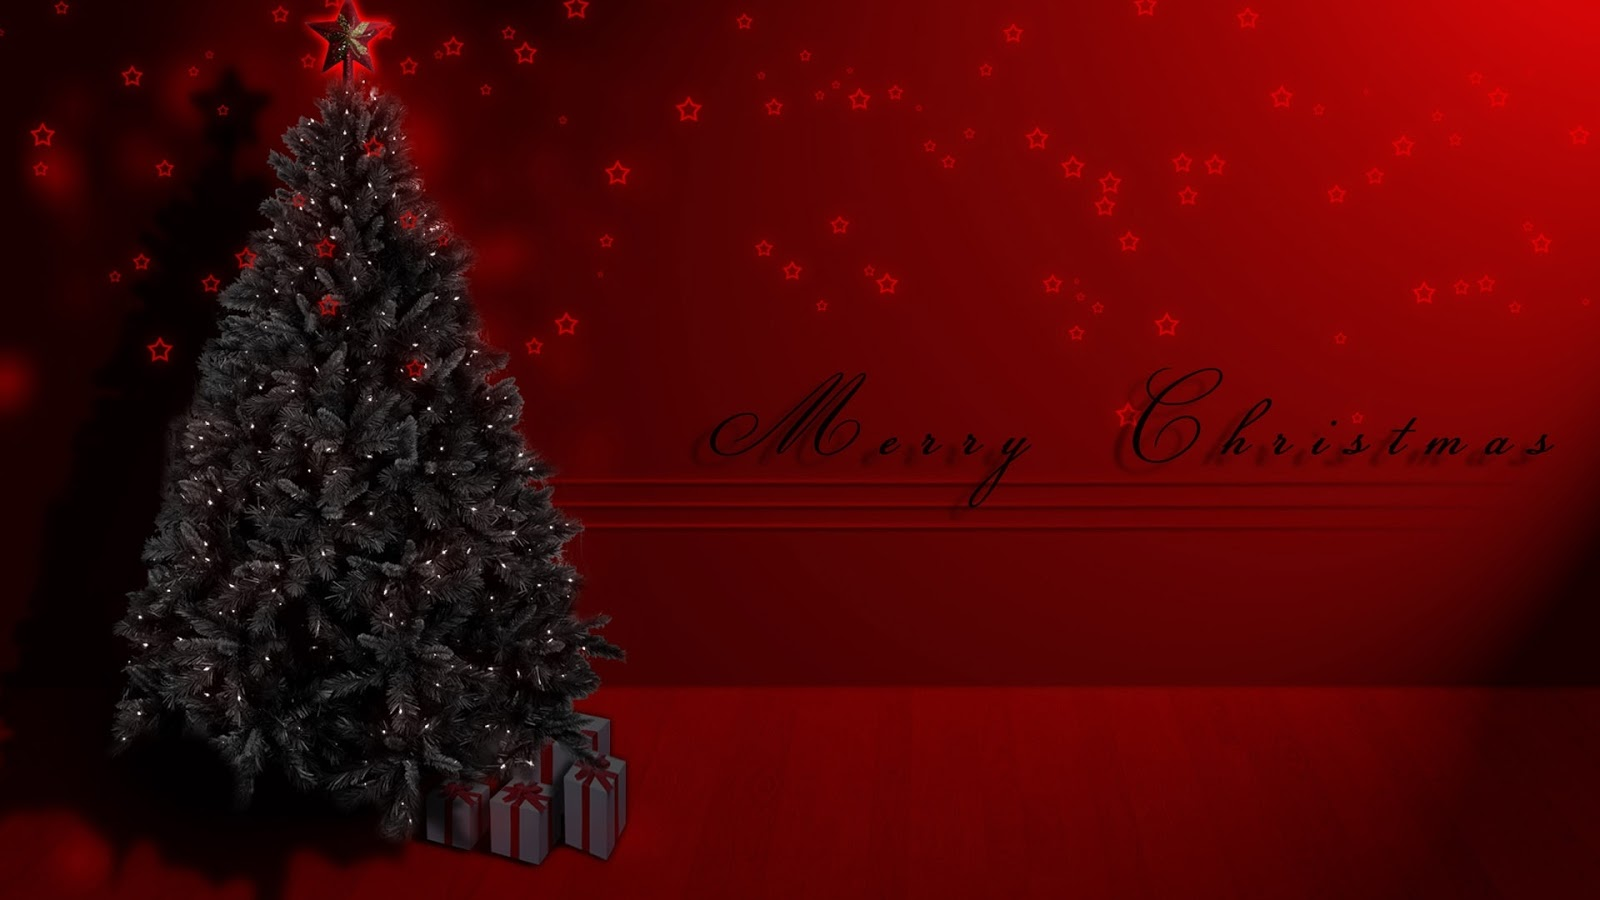 Christmas HD wallpapers 1080p HD Wallpapers High Definition 1600x900